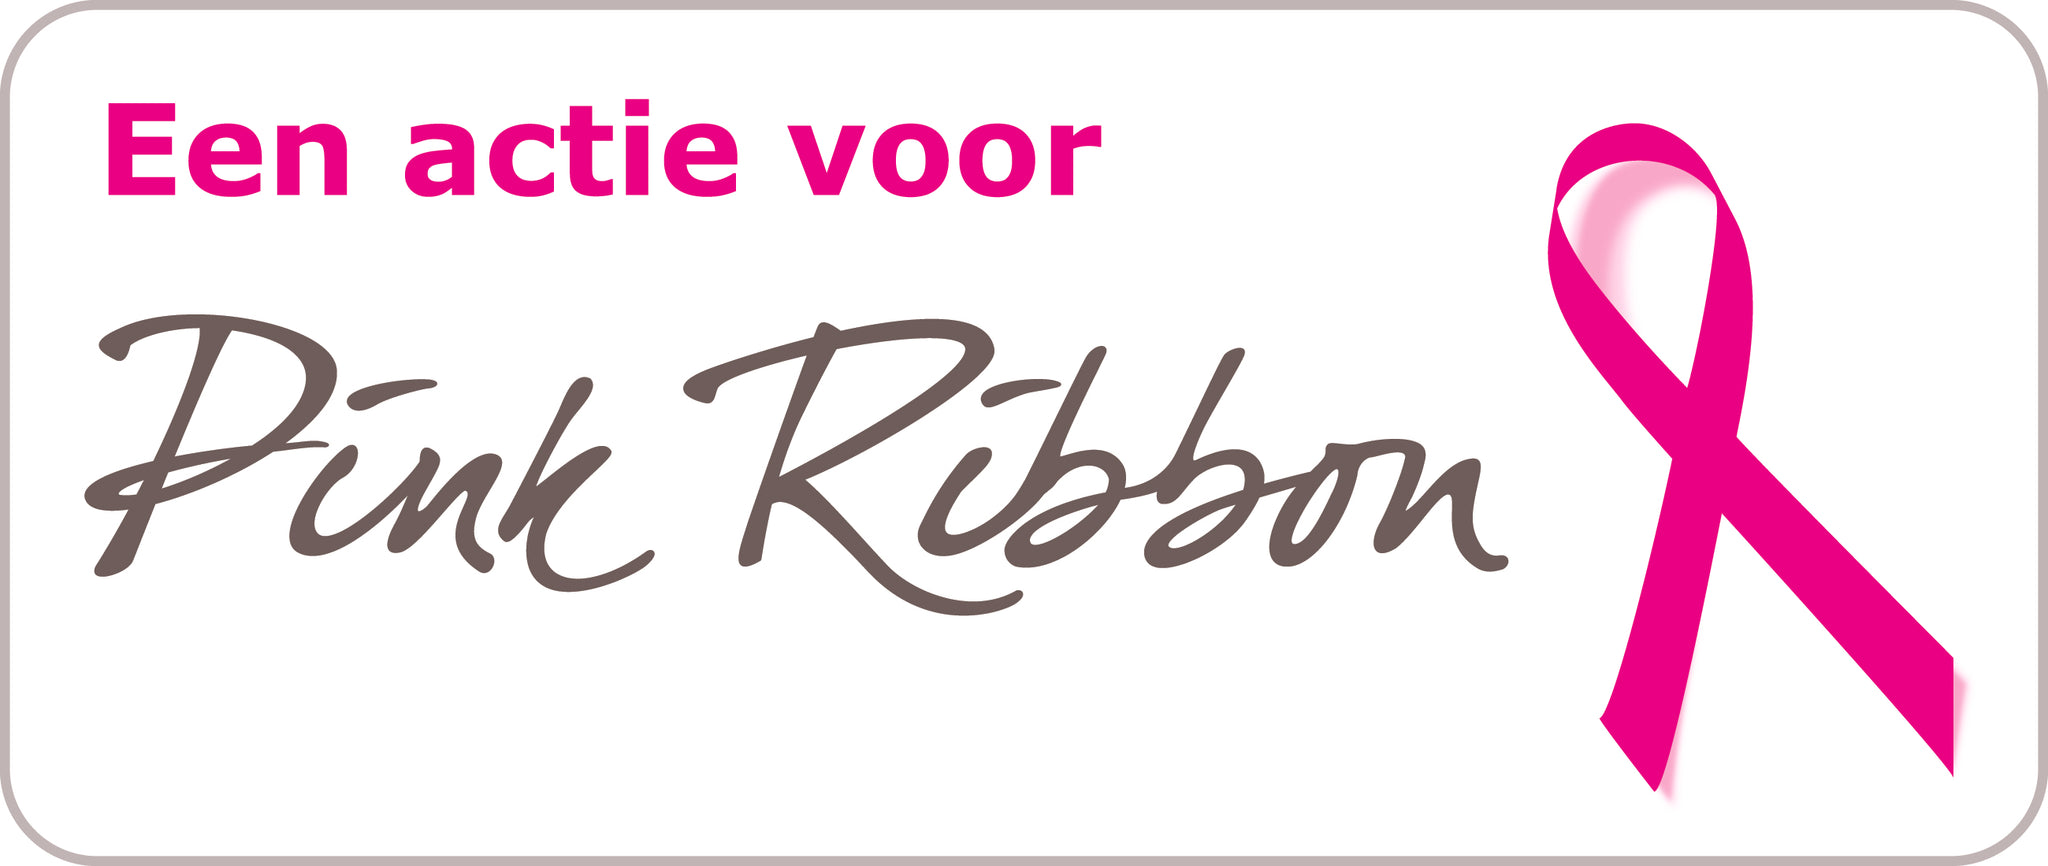 Ribbon Collectie Zadeldekje Springen